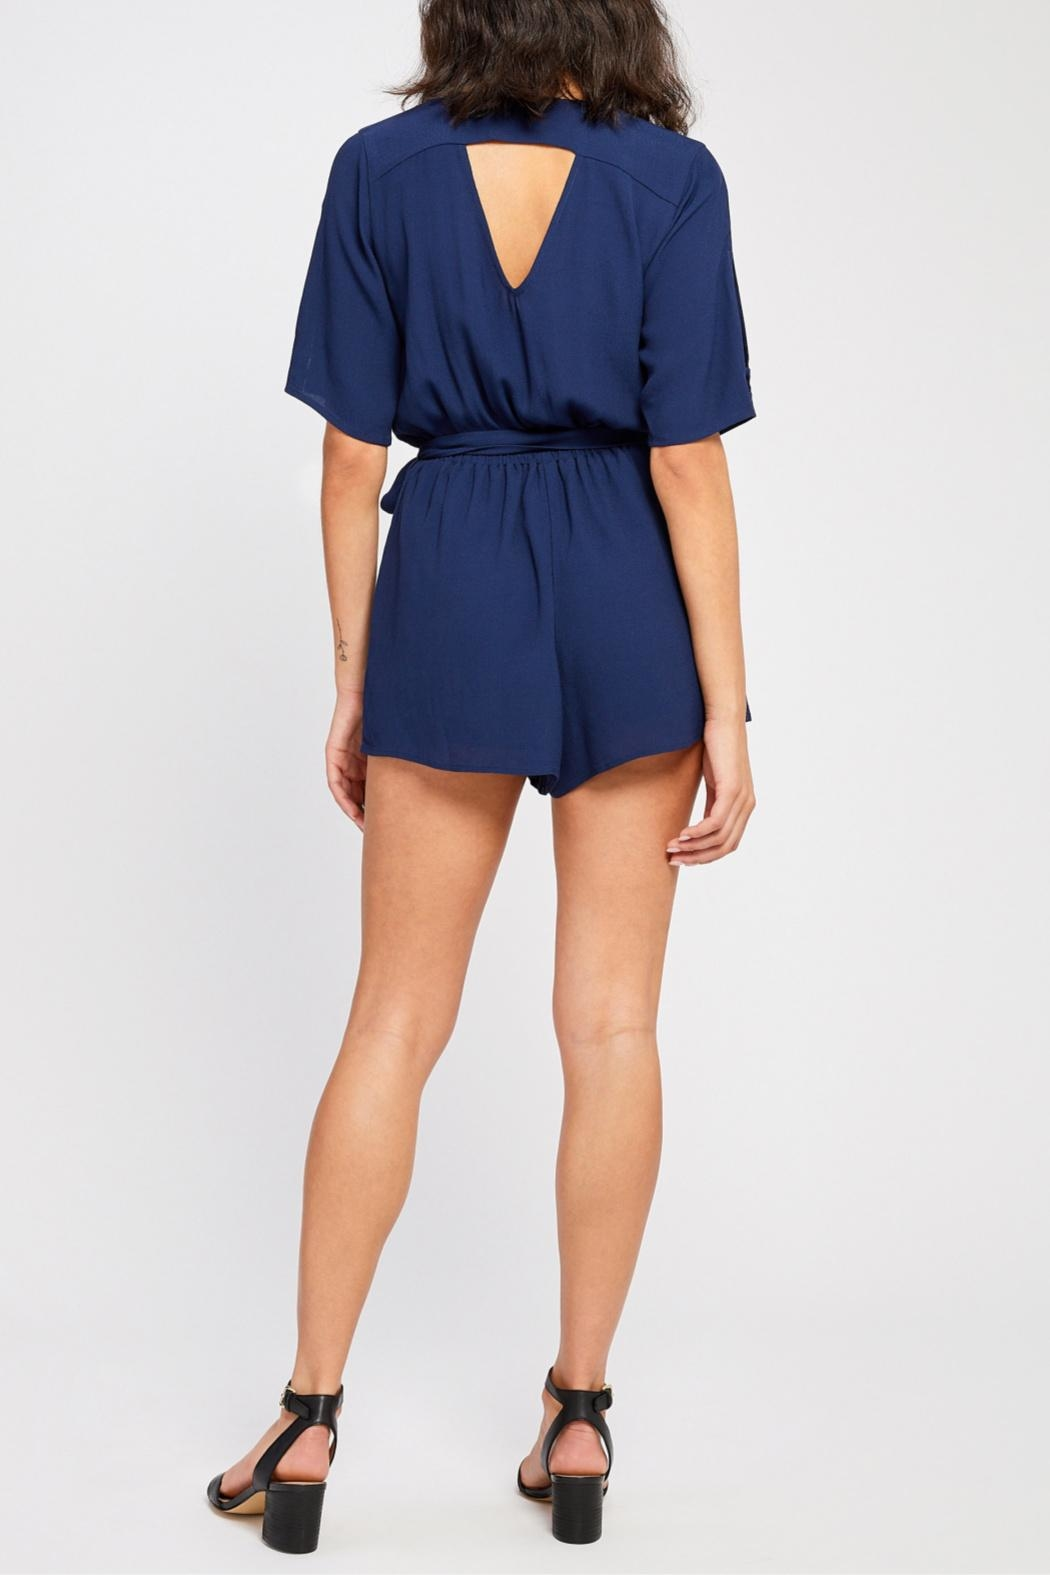 Gentle Fawn Short Sleeve Romper - Back Cropped Image